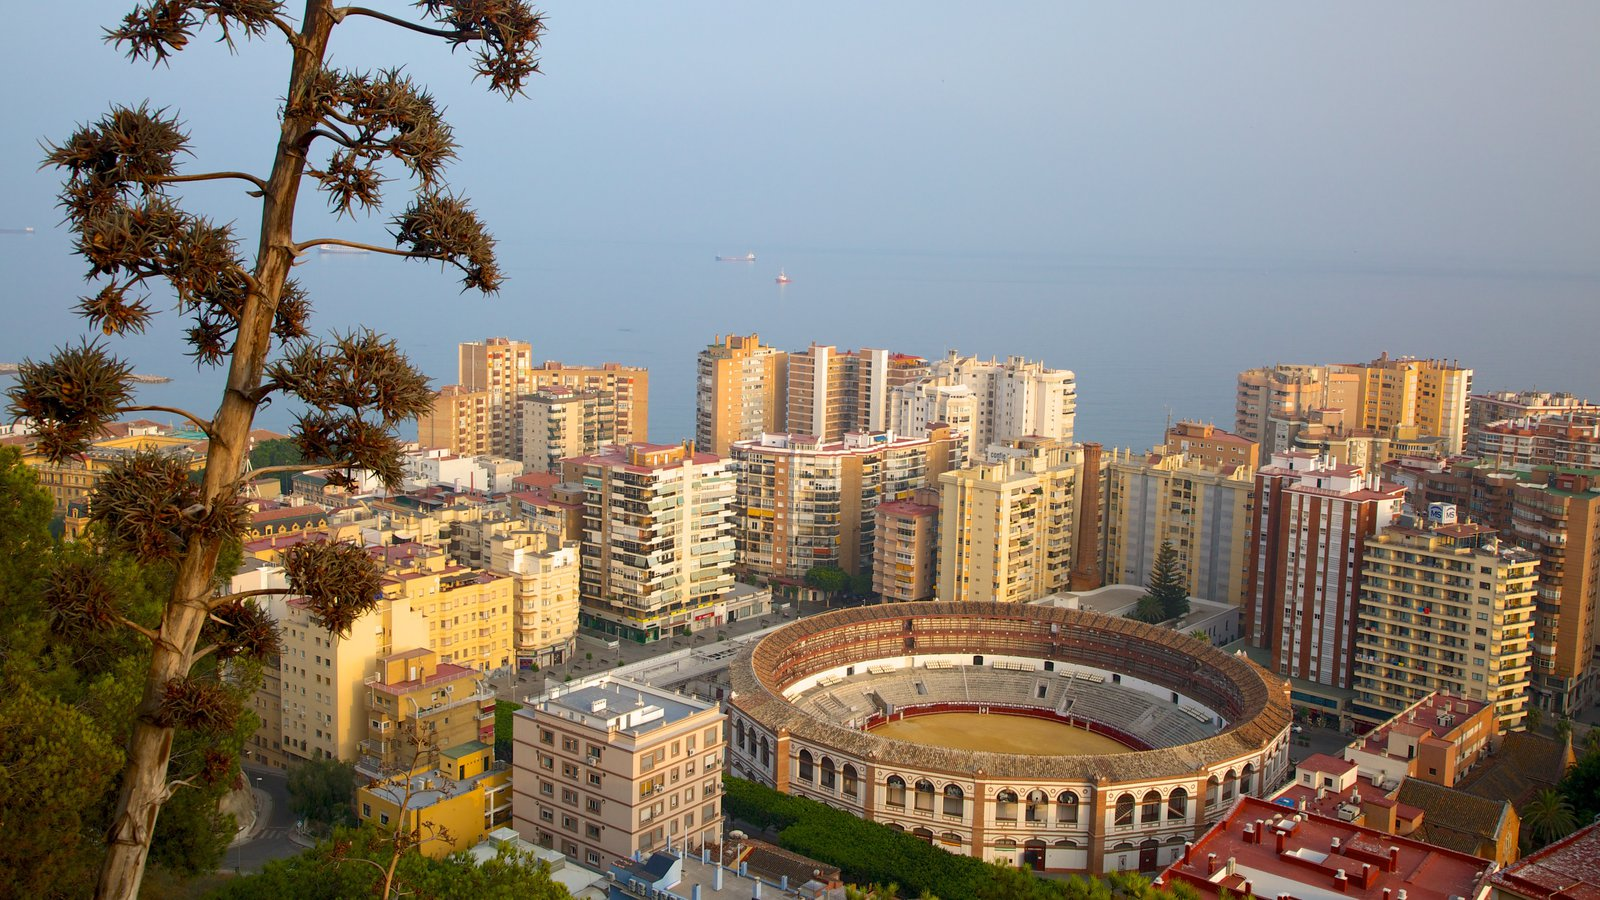 Gibralfaro Castle which includes central business district, a city and heritage architecture